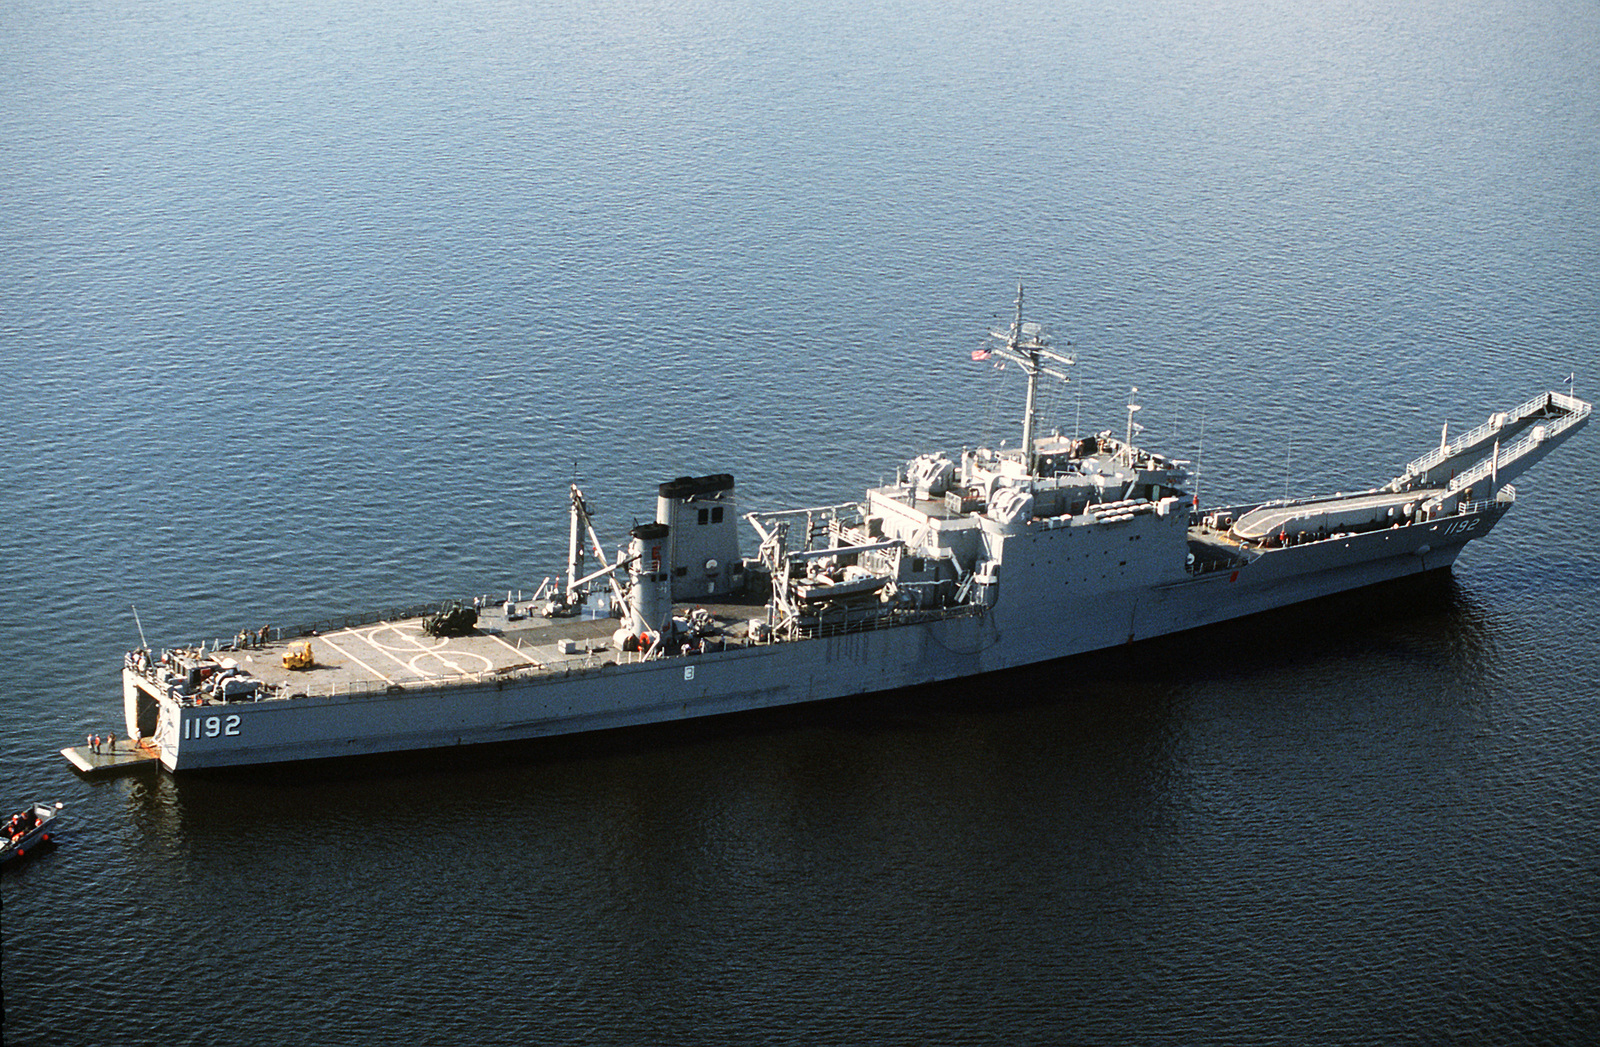 An aerial starboard quarter view of the tank landing ship USS SPARTANBURG County (LST-1192) in use during Exercise Patriot Samaritan